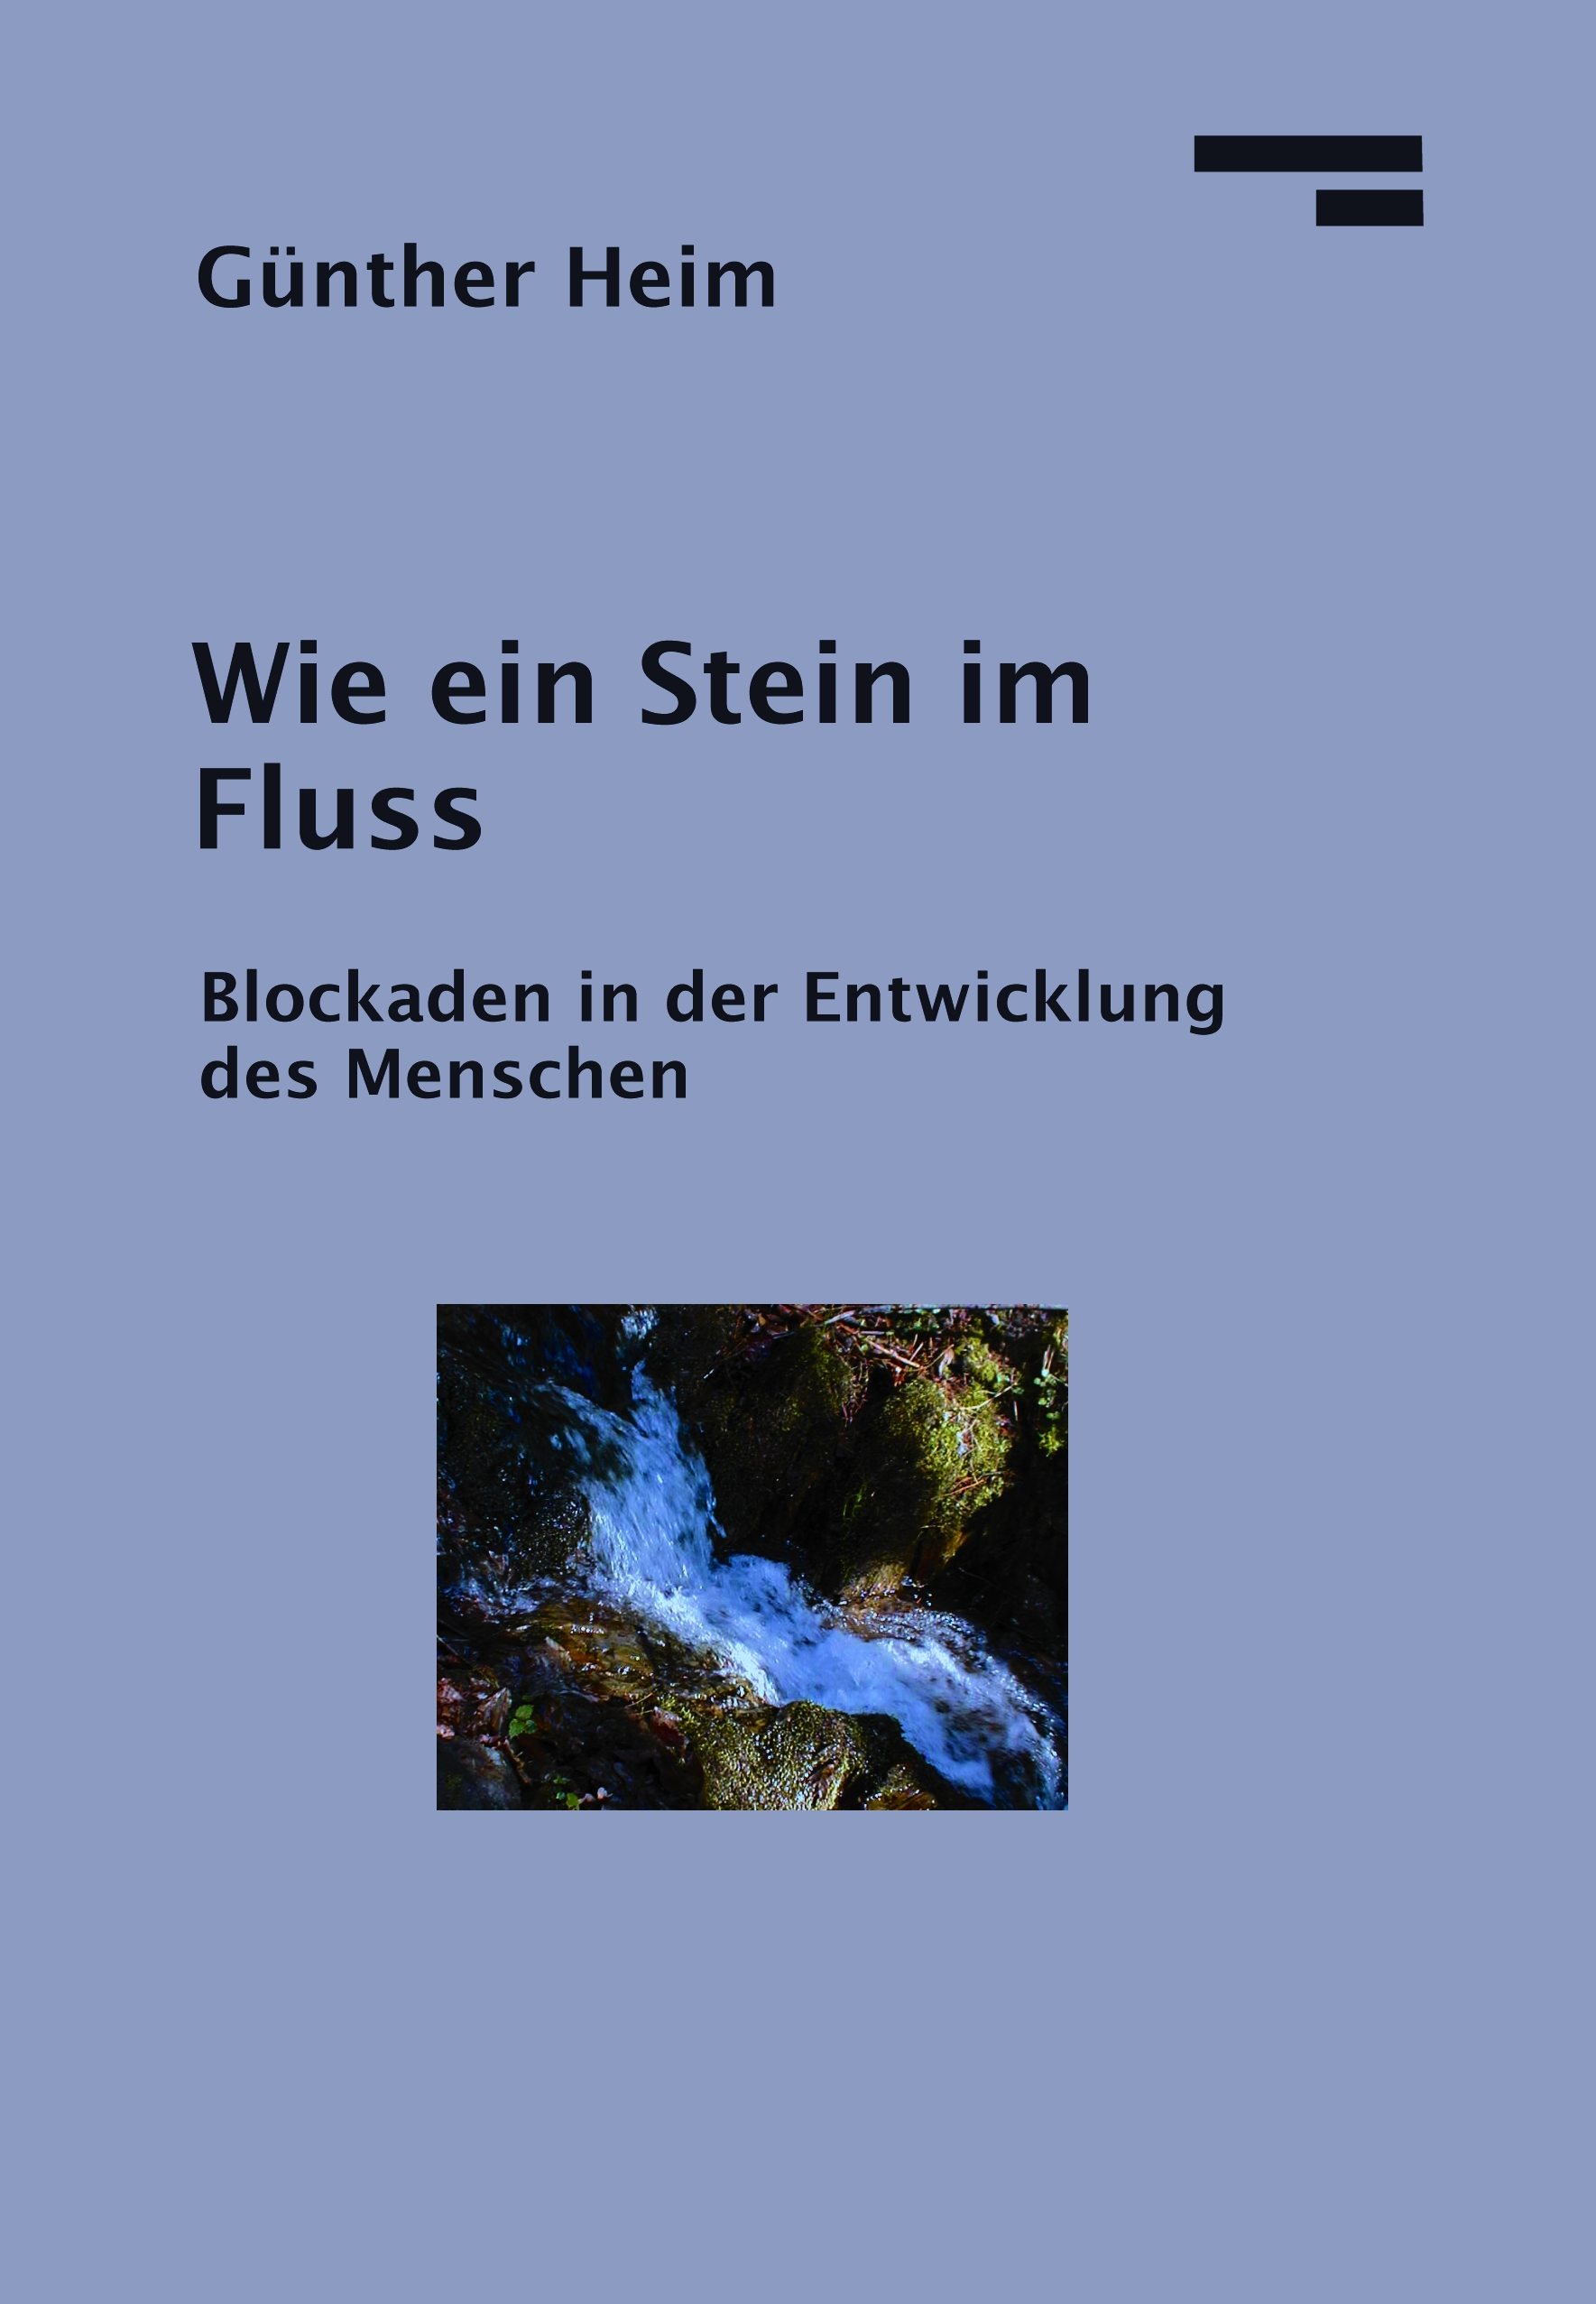 Blockadentheorie